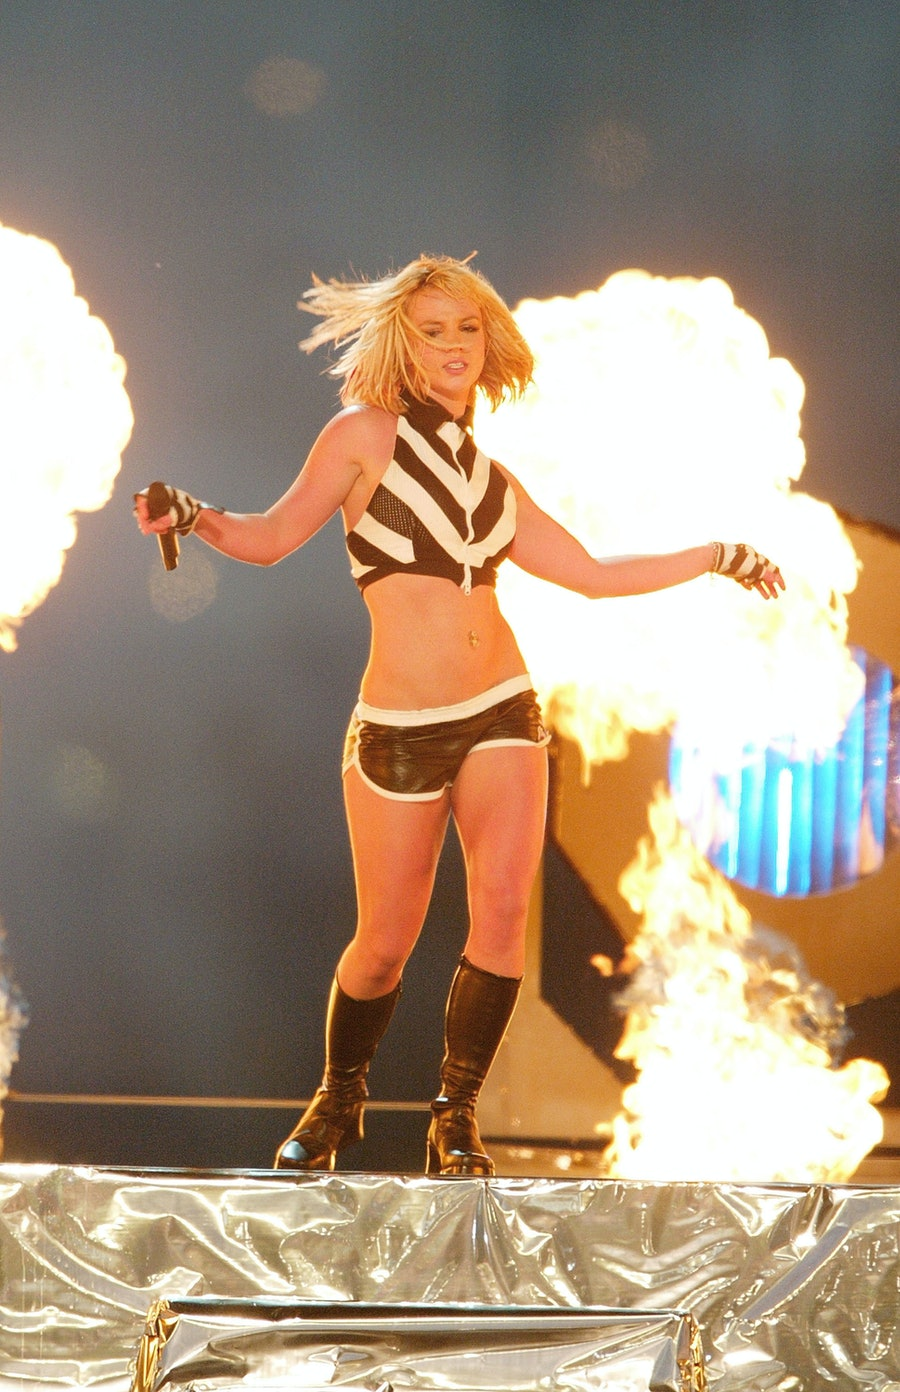 britney spears performing in front of fire 2003